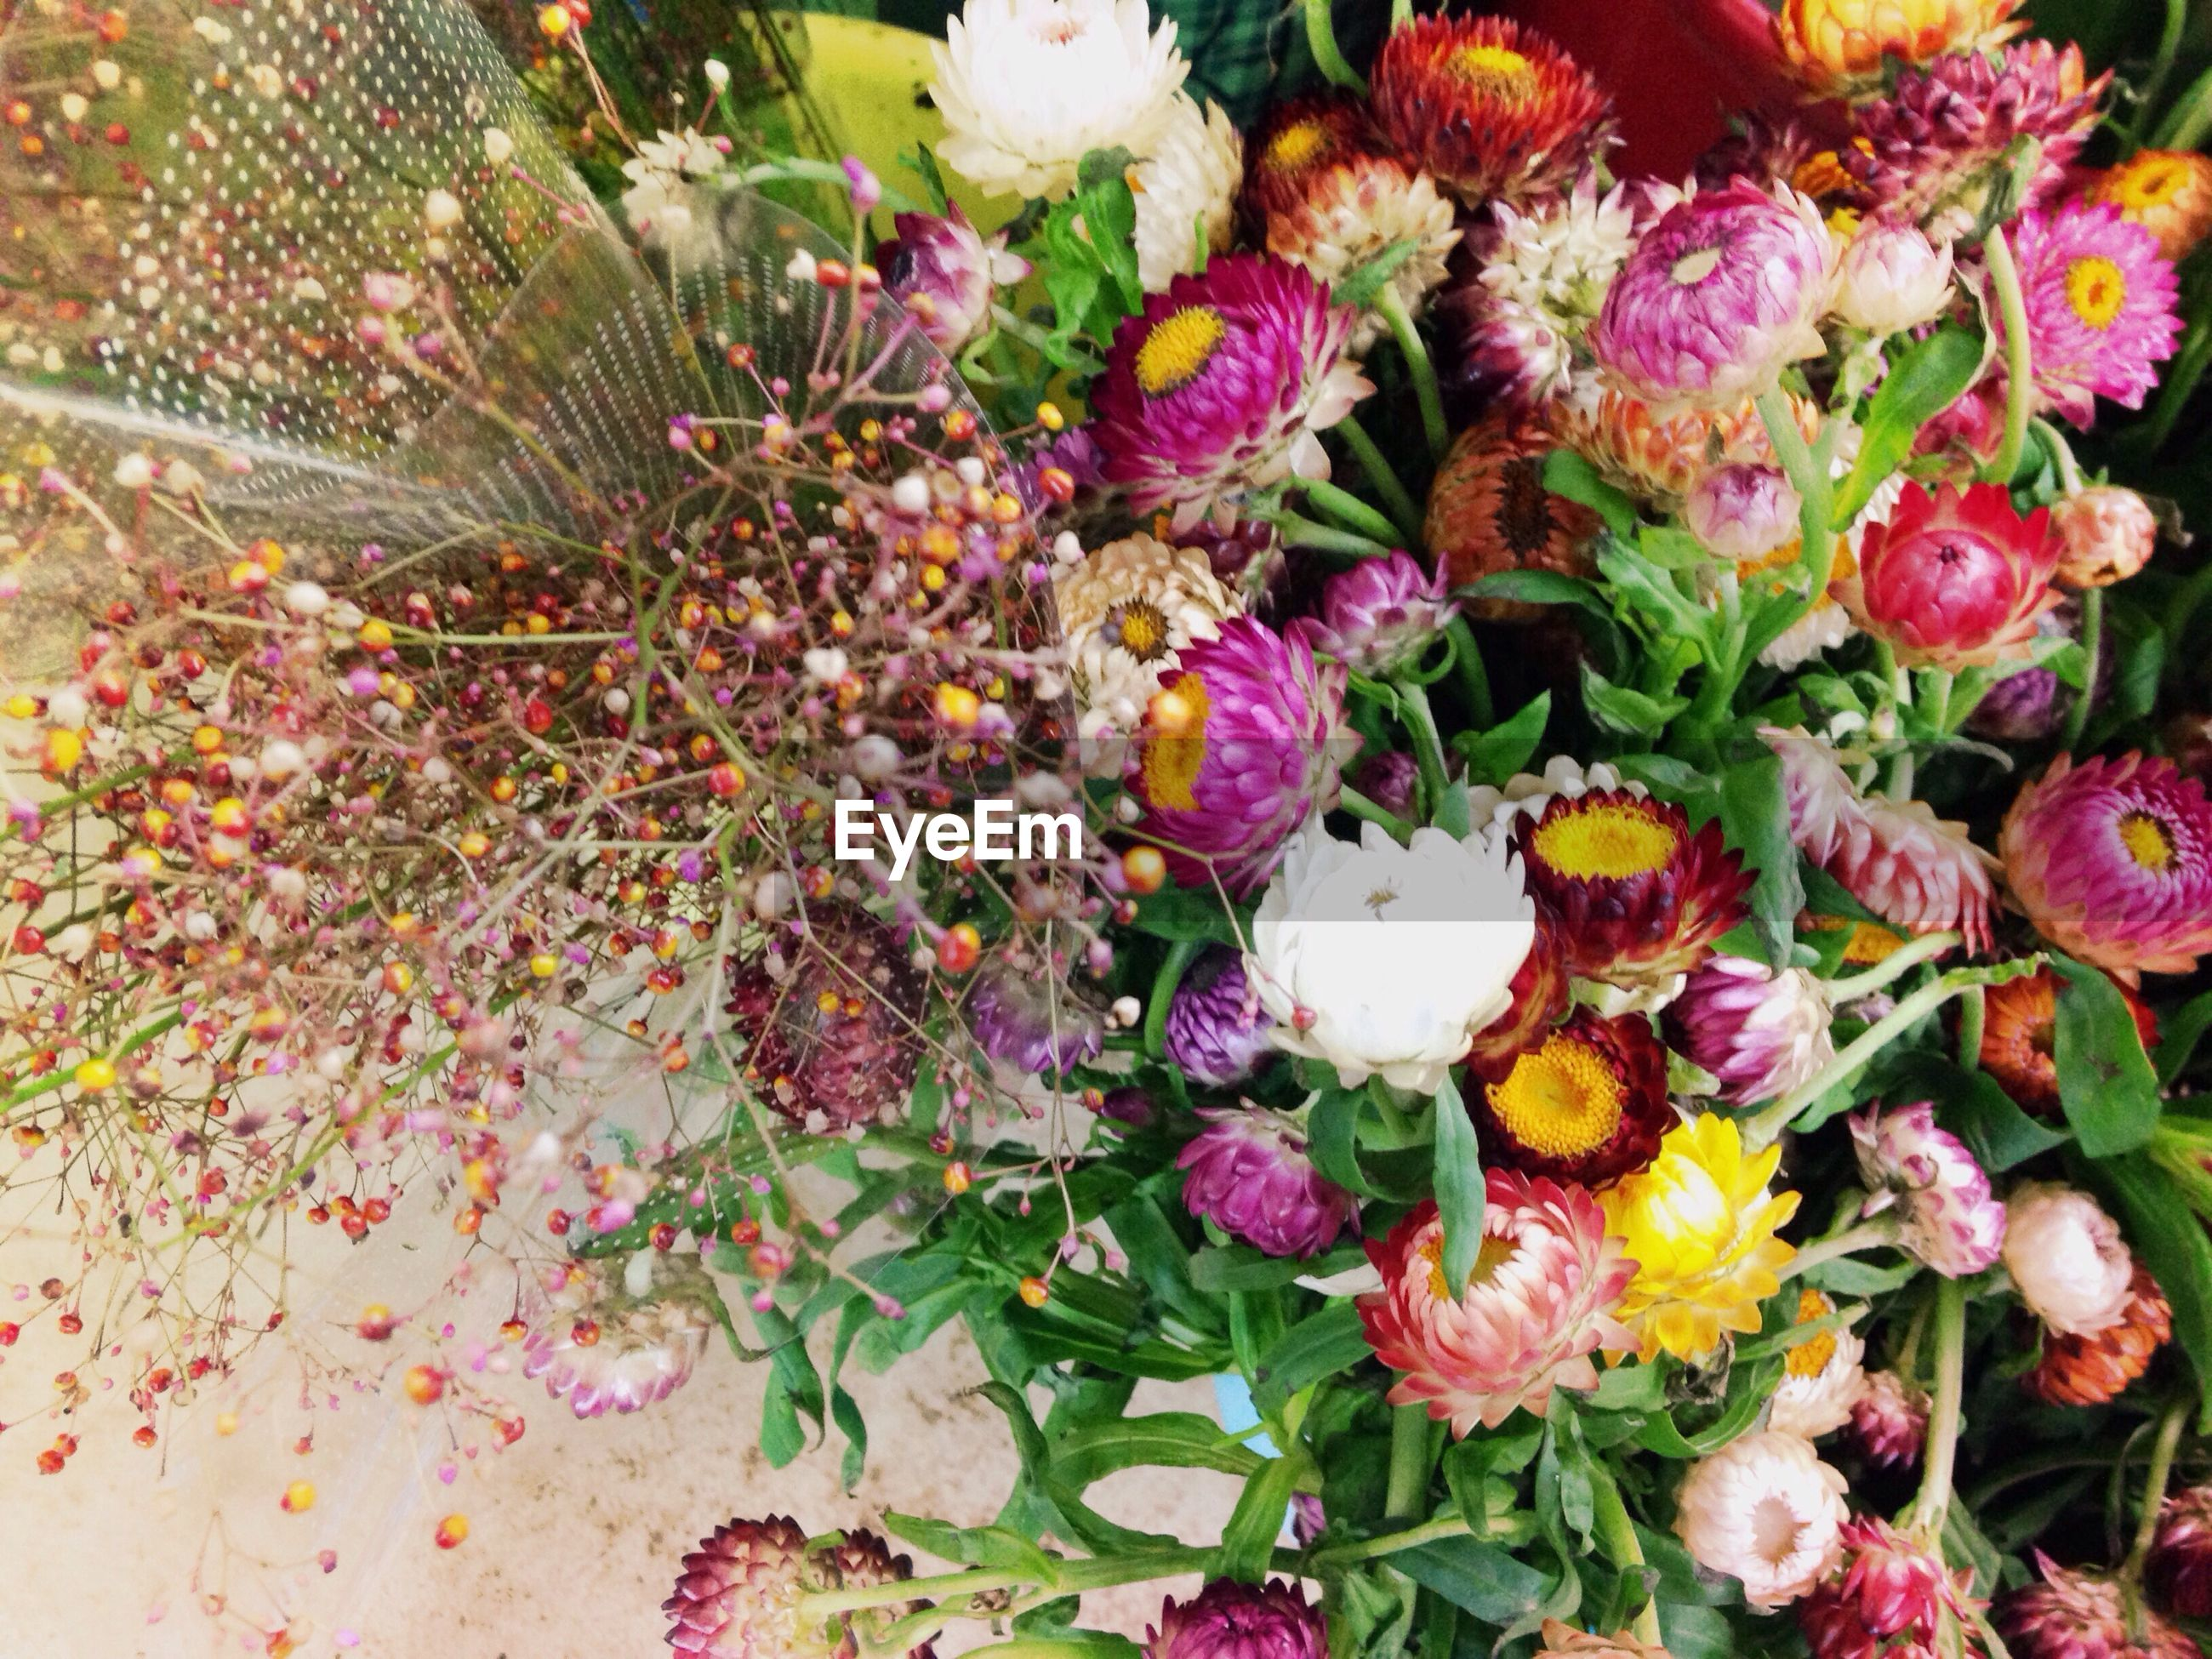 High angle view of colorful flowers in bouquet